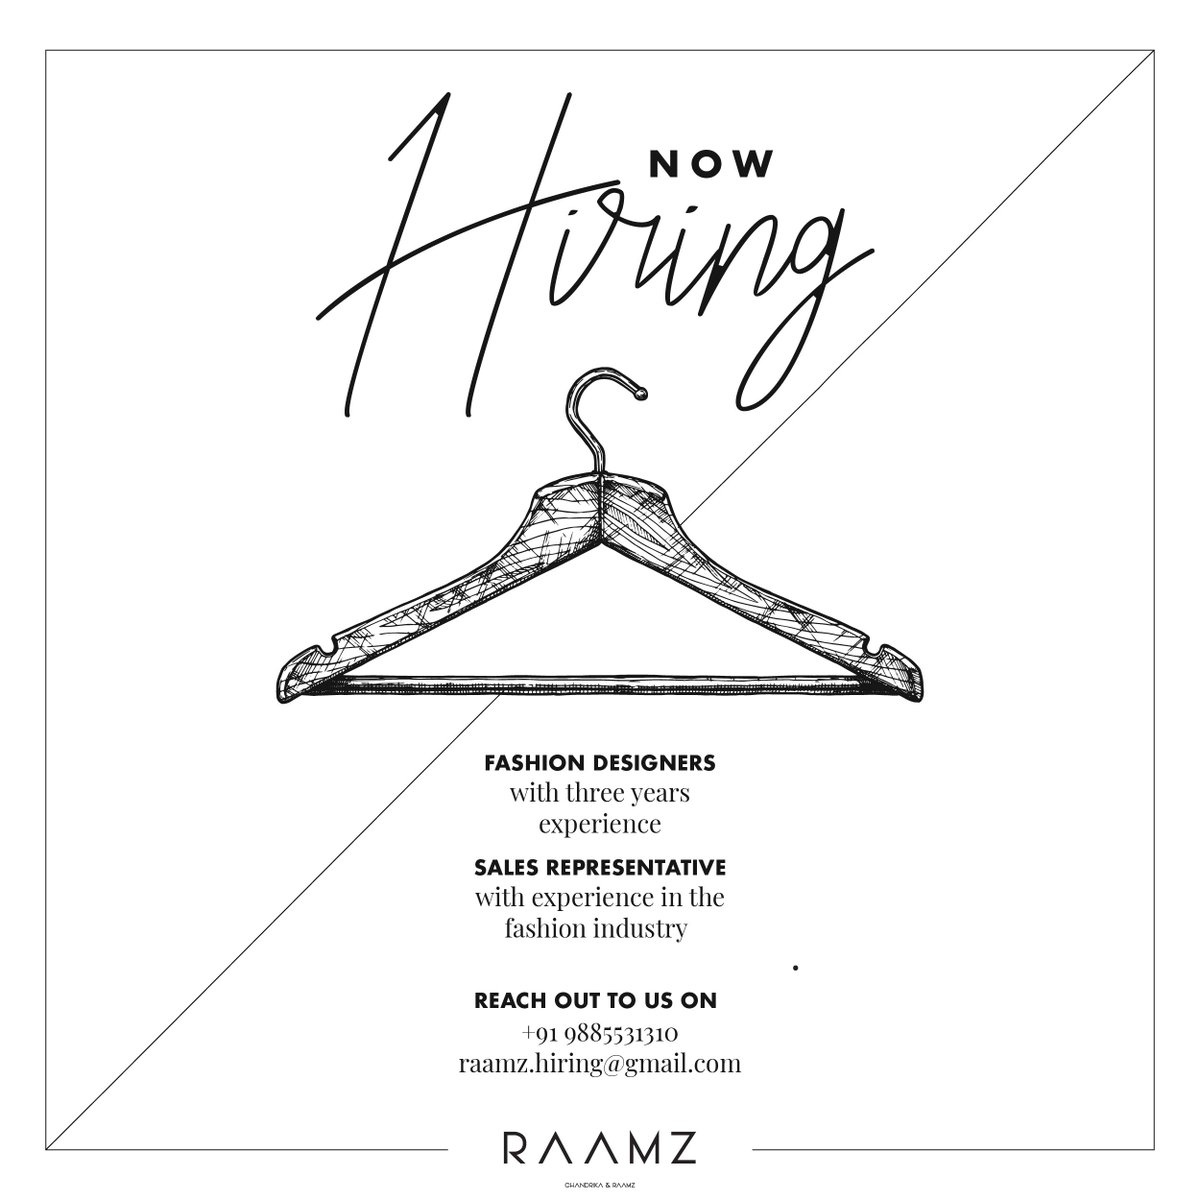 Raamzofficial On Twitter We Are Growing And Looking For Passionate Fashion Designers And Sales Representatives With Prior Experience In Fashion Industry If That S You Share Your Cv And Portfolio On Raamz Hiring Gmail Com